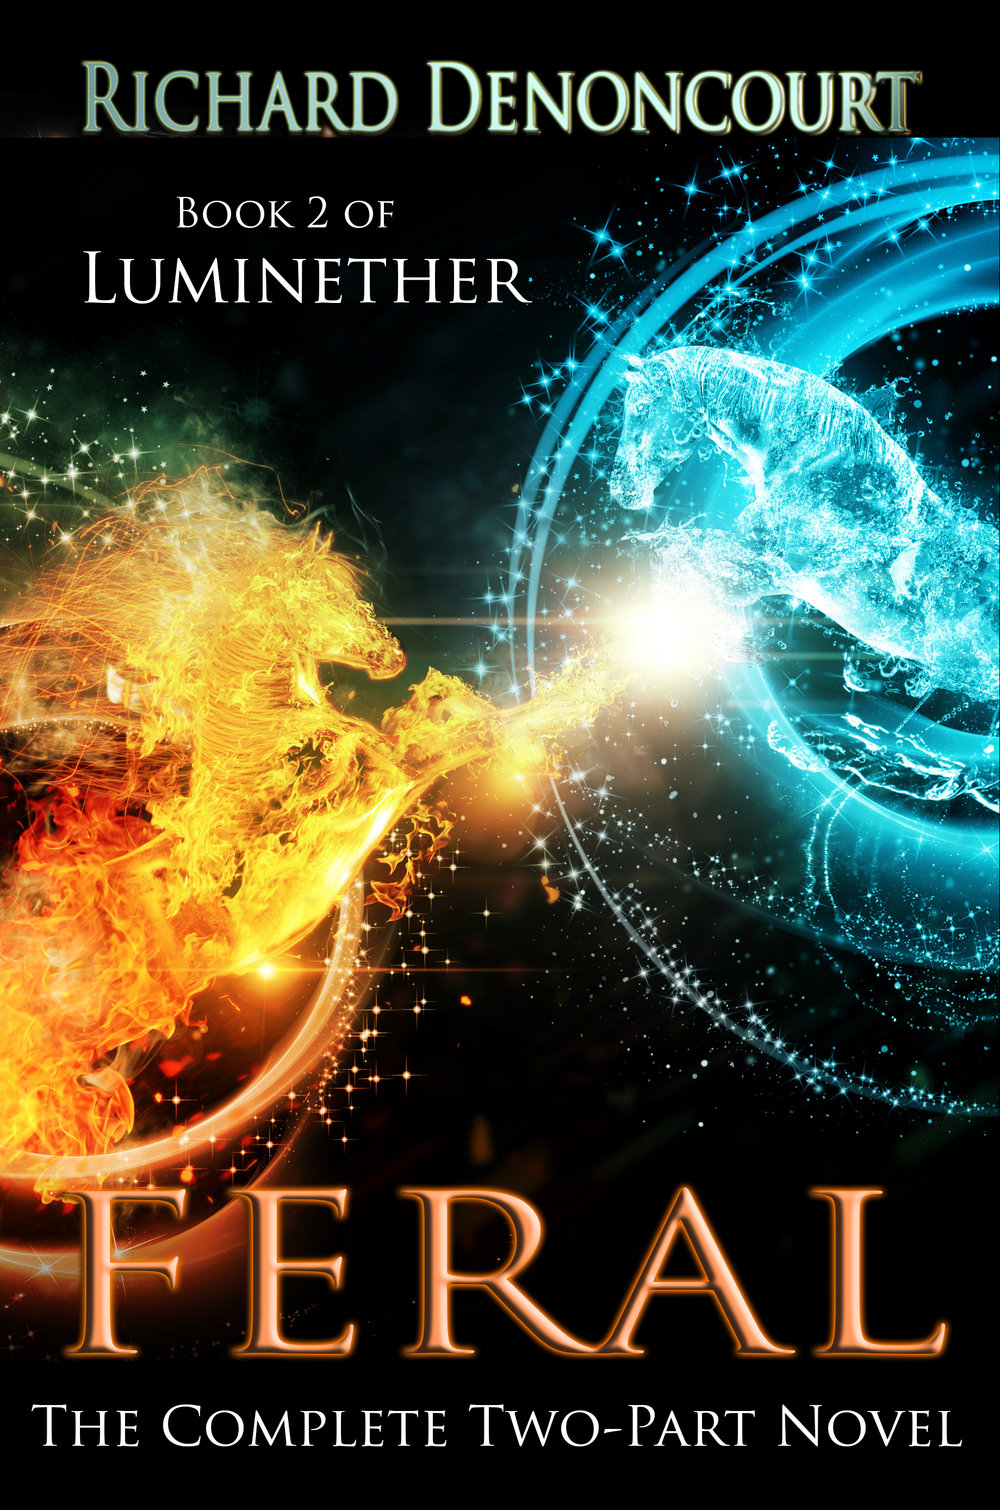 Feral Book 2 Complete Novel eBook cover.jpg